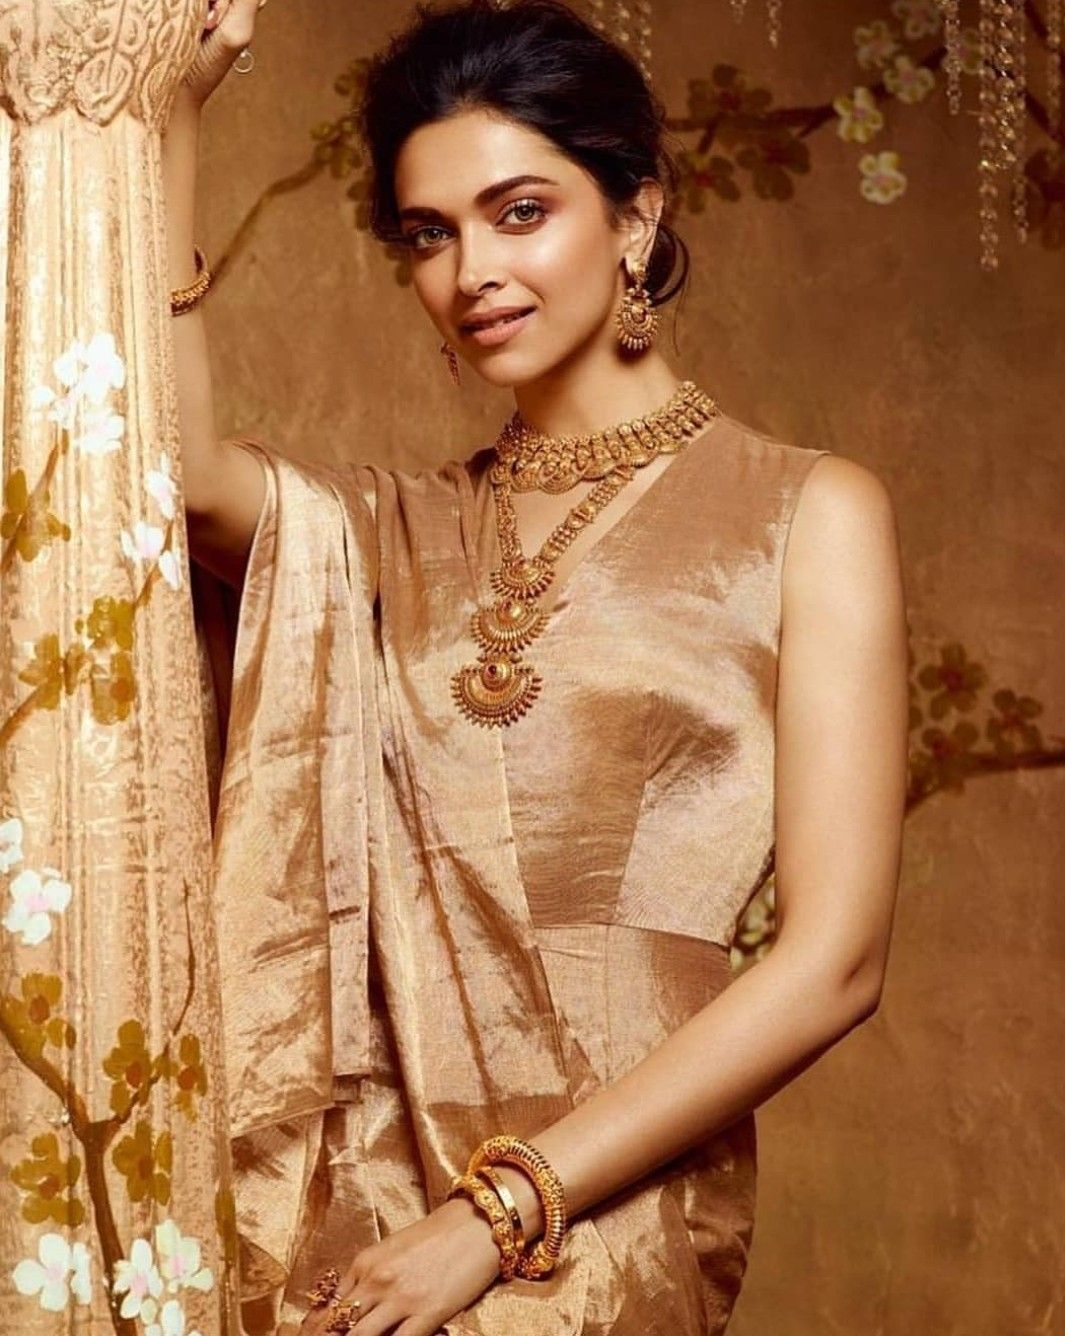 Deepika Padukone For New Utsava Collection By Tanishq Jewellery Deepika Padukone Style Fashion Tanishq Jewellery